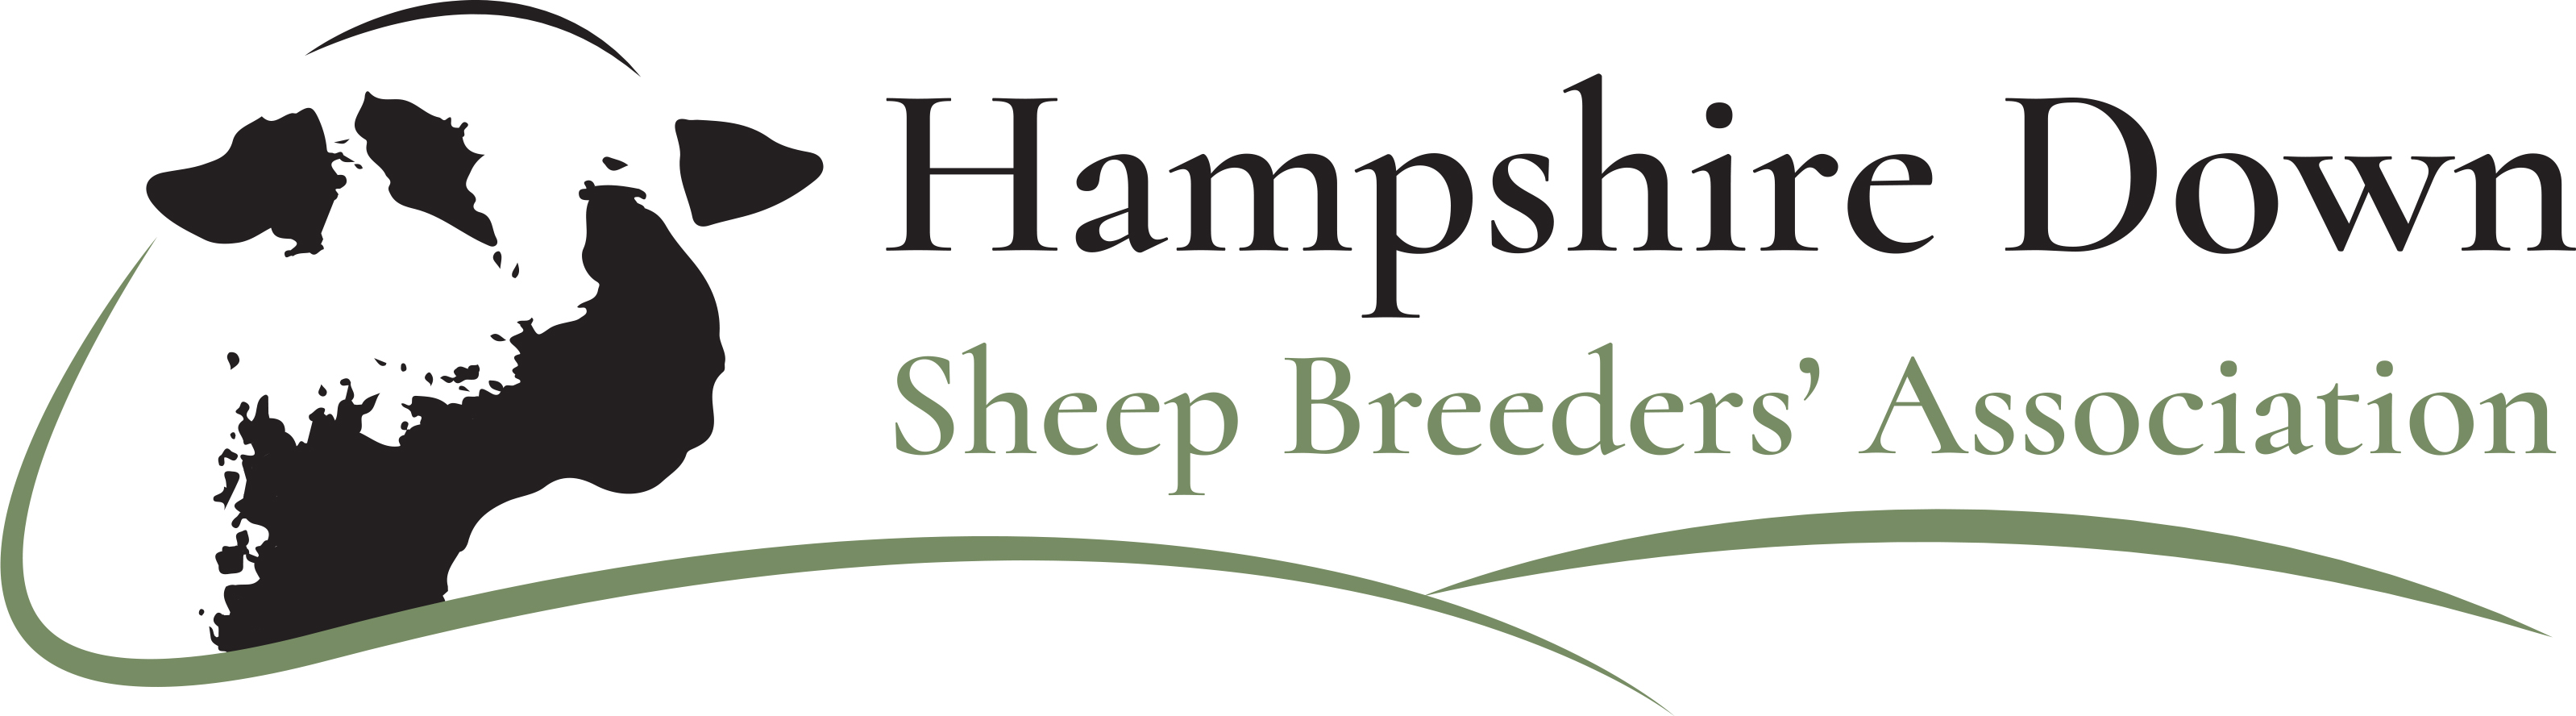 The Hampshire Down Sheep Breeders Association Image